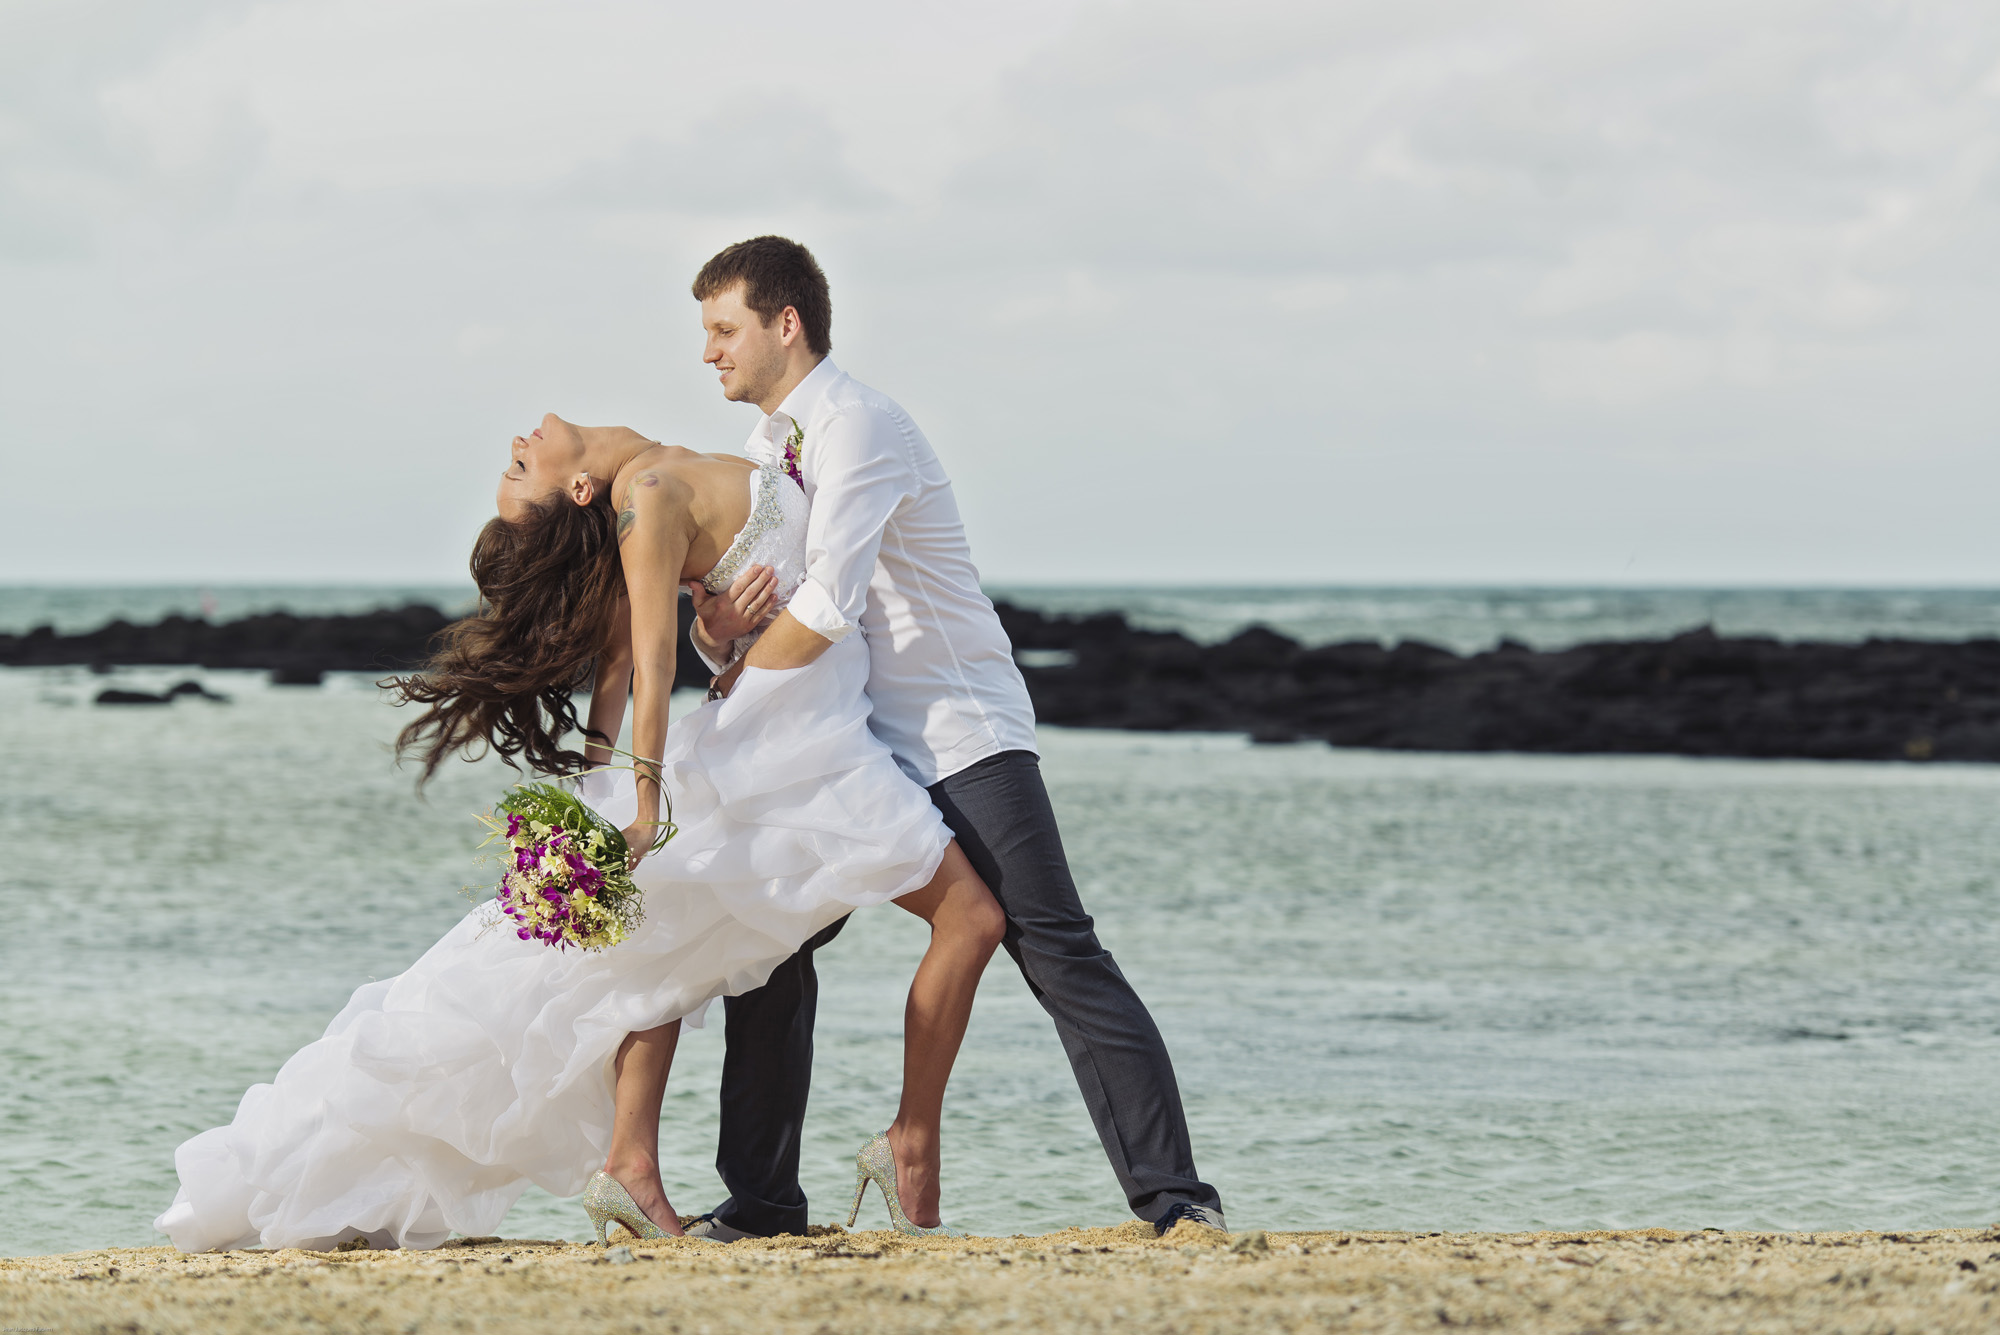 Justyna and Michael-153.jpg